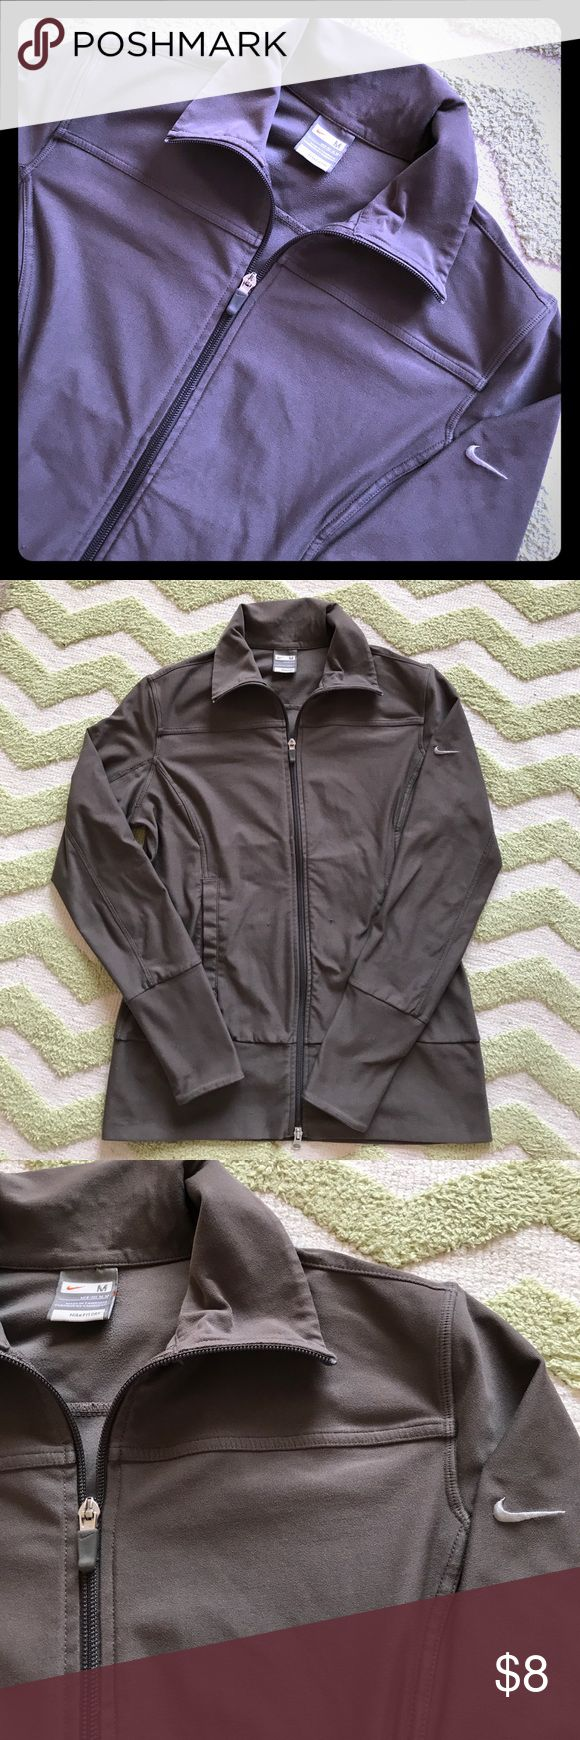 Nike Fit Dry Full Zip Jacket Medium Smoke-free, pet-free home. Has a couple of snags in fabric (pictured). Nike Tops Sweatshirts & Hoodies